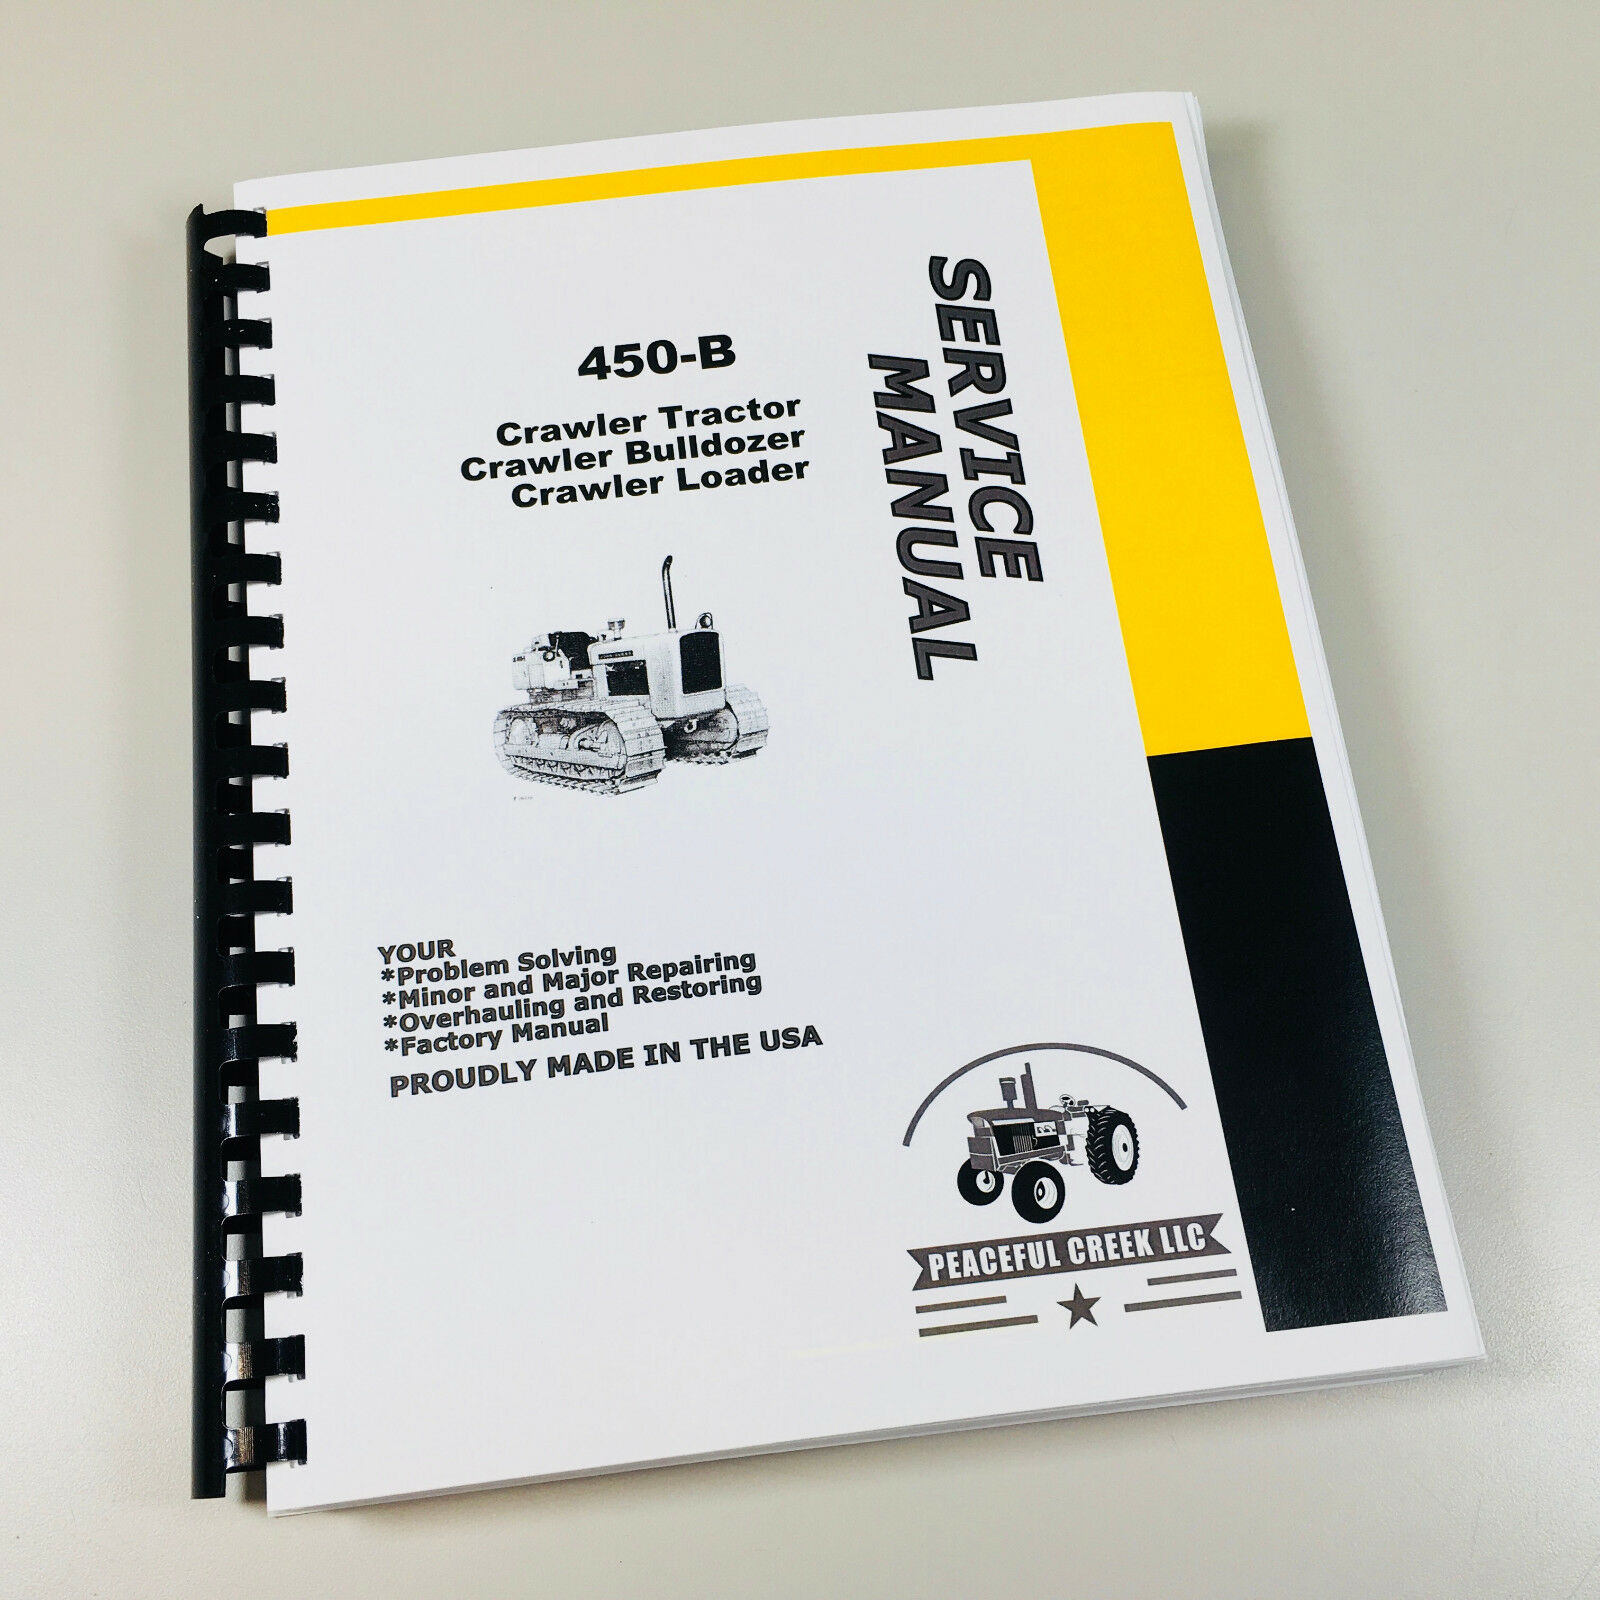 Service Technical Manual For John Deere 450B Crawler Tractor Loader Dozer  Repair 1 of 9Only 4 available ...